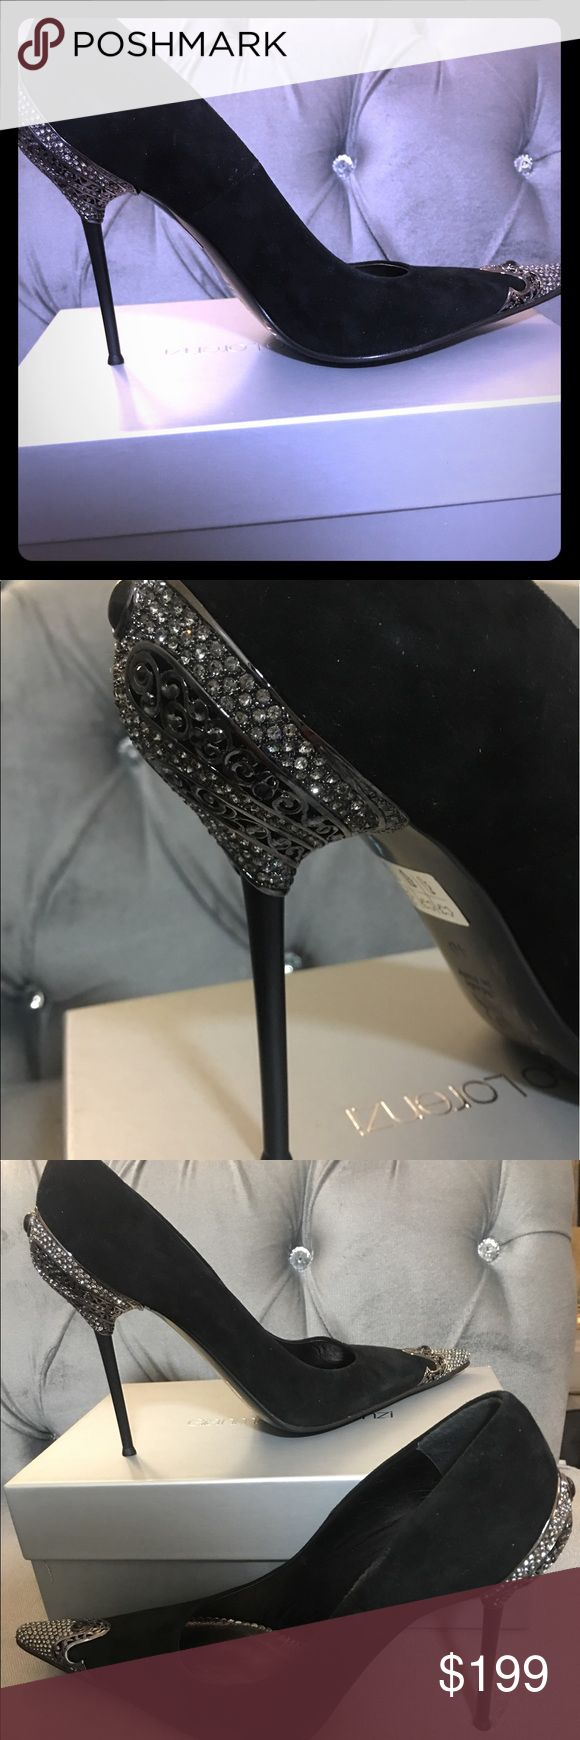 PRICE DROP!! Swarovski embellished suede shoes Beautiful Italian Swarovski and suede shoes! Made by renowned designed Gianmarco Lorenzi! New, never been worn with original box gianmarco lorenzi Shoes Heels